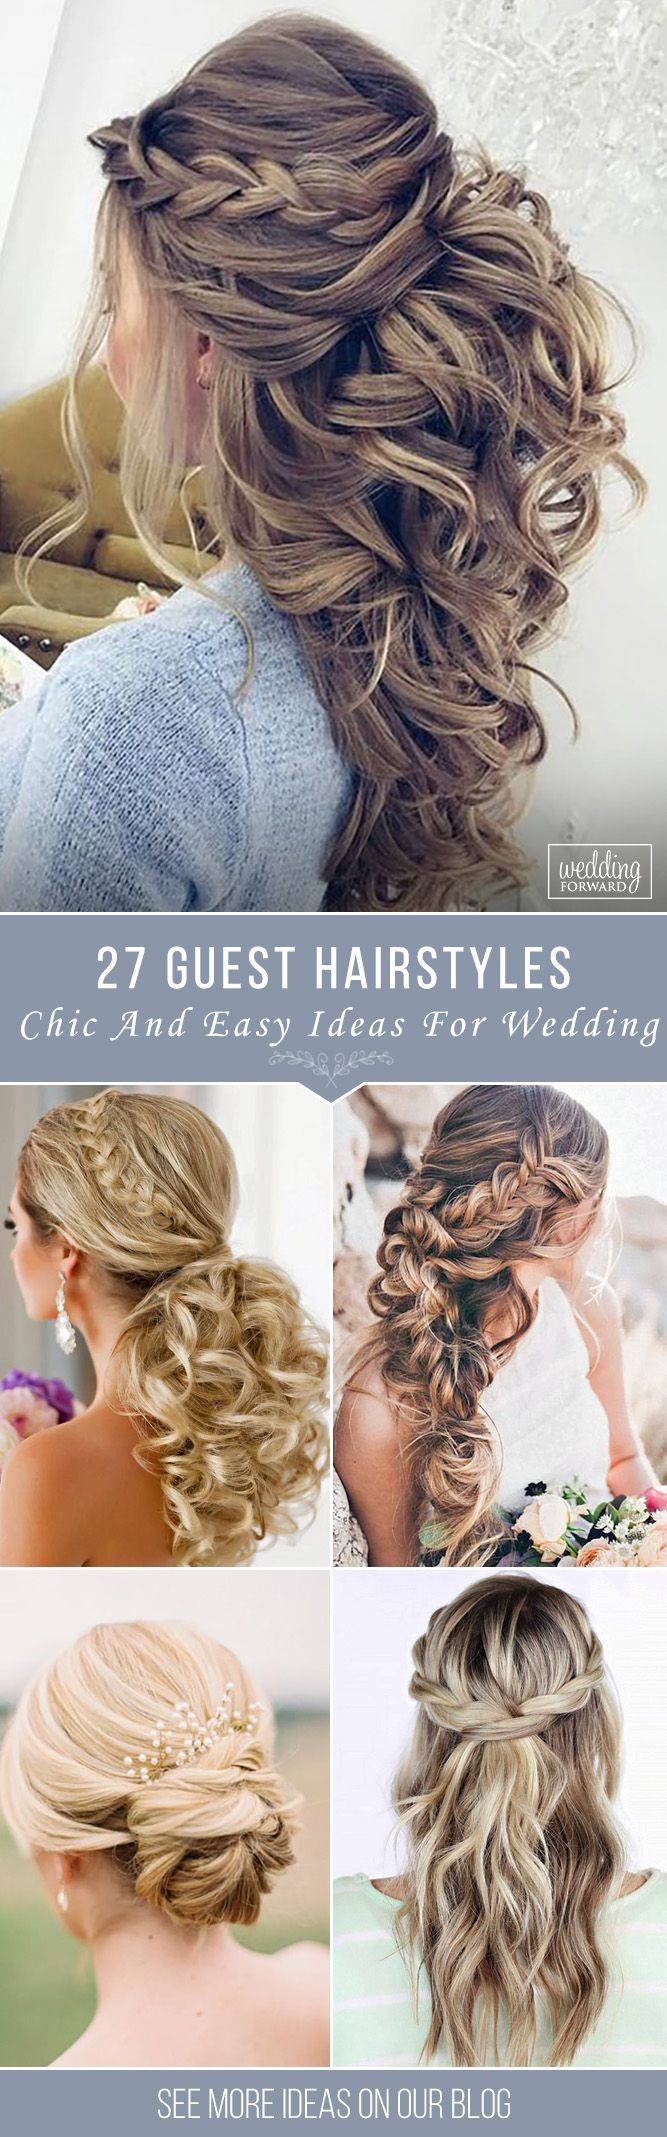 Wedding Guest Hairstyles 42 The Most Beautiful Ideas Hair Styles Wedding Guest Hairstyles Easy Wedding Guest Hairstyles